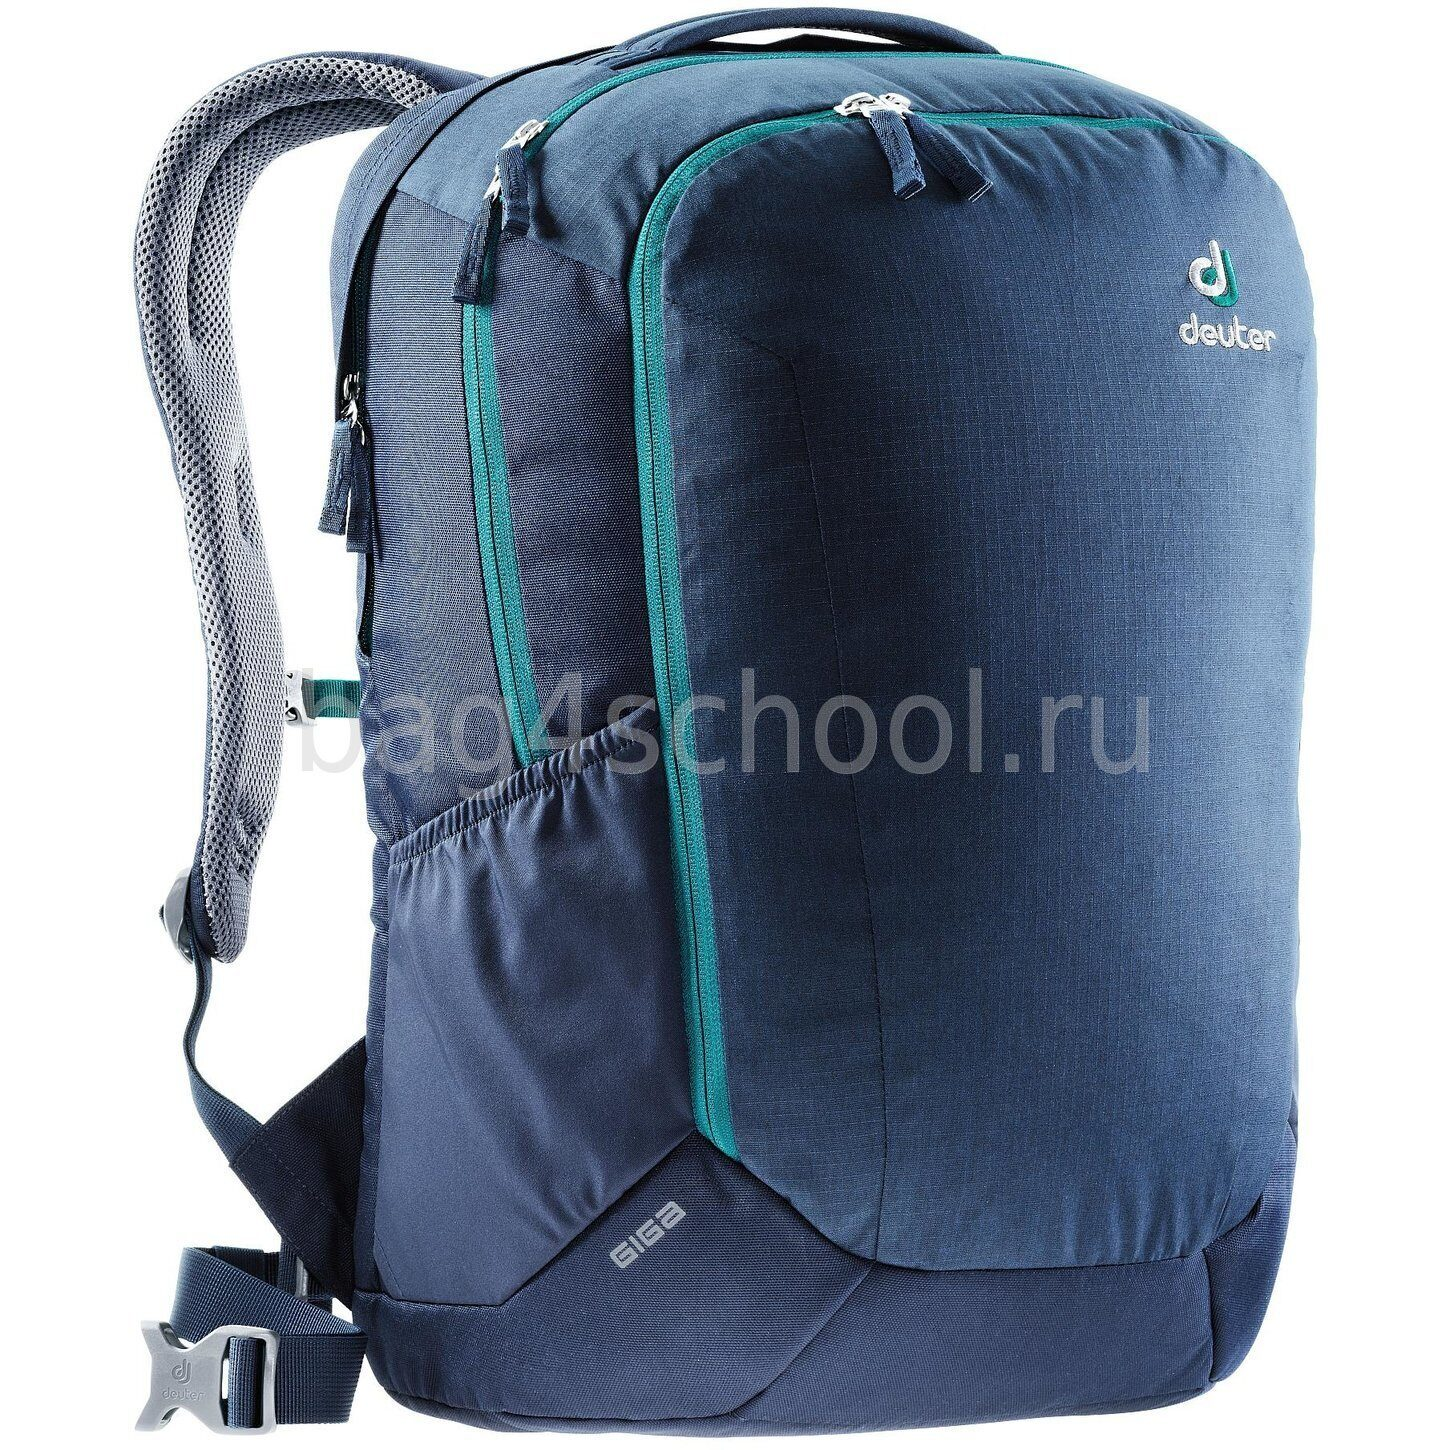 Рюкзак Deuter Giga EL midnight-navy 3821918-3365